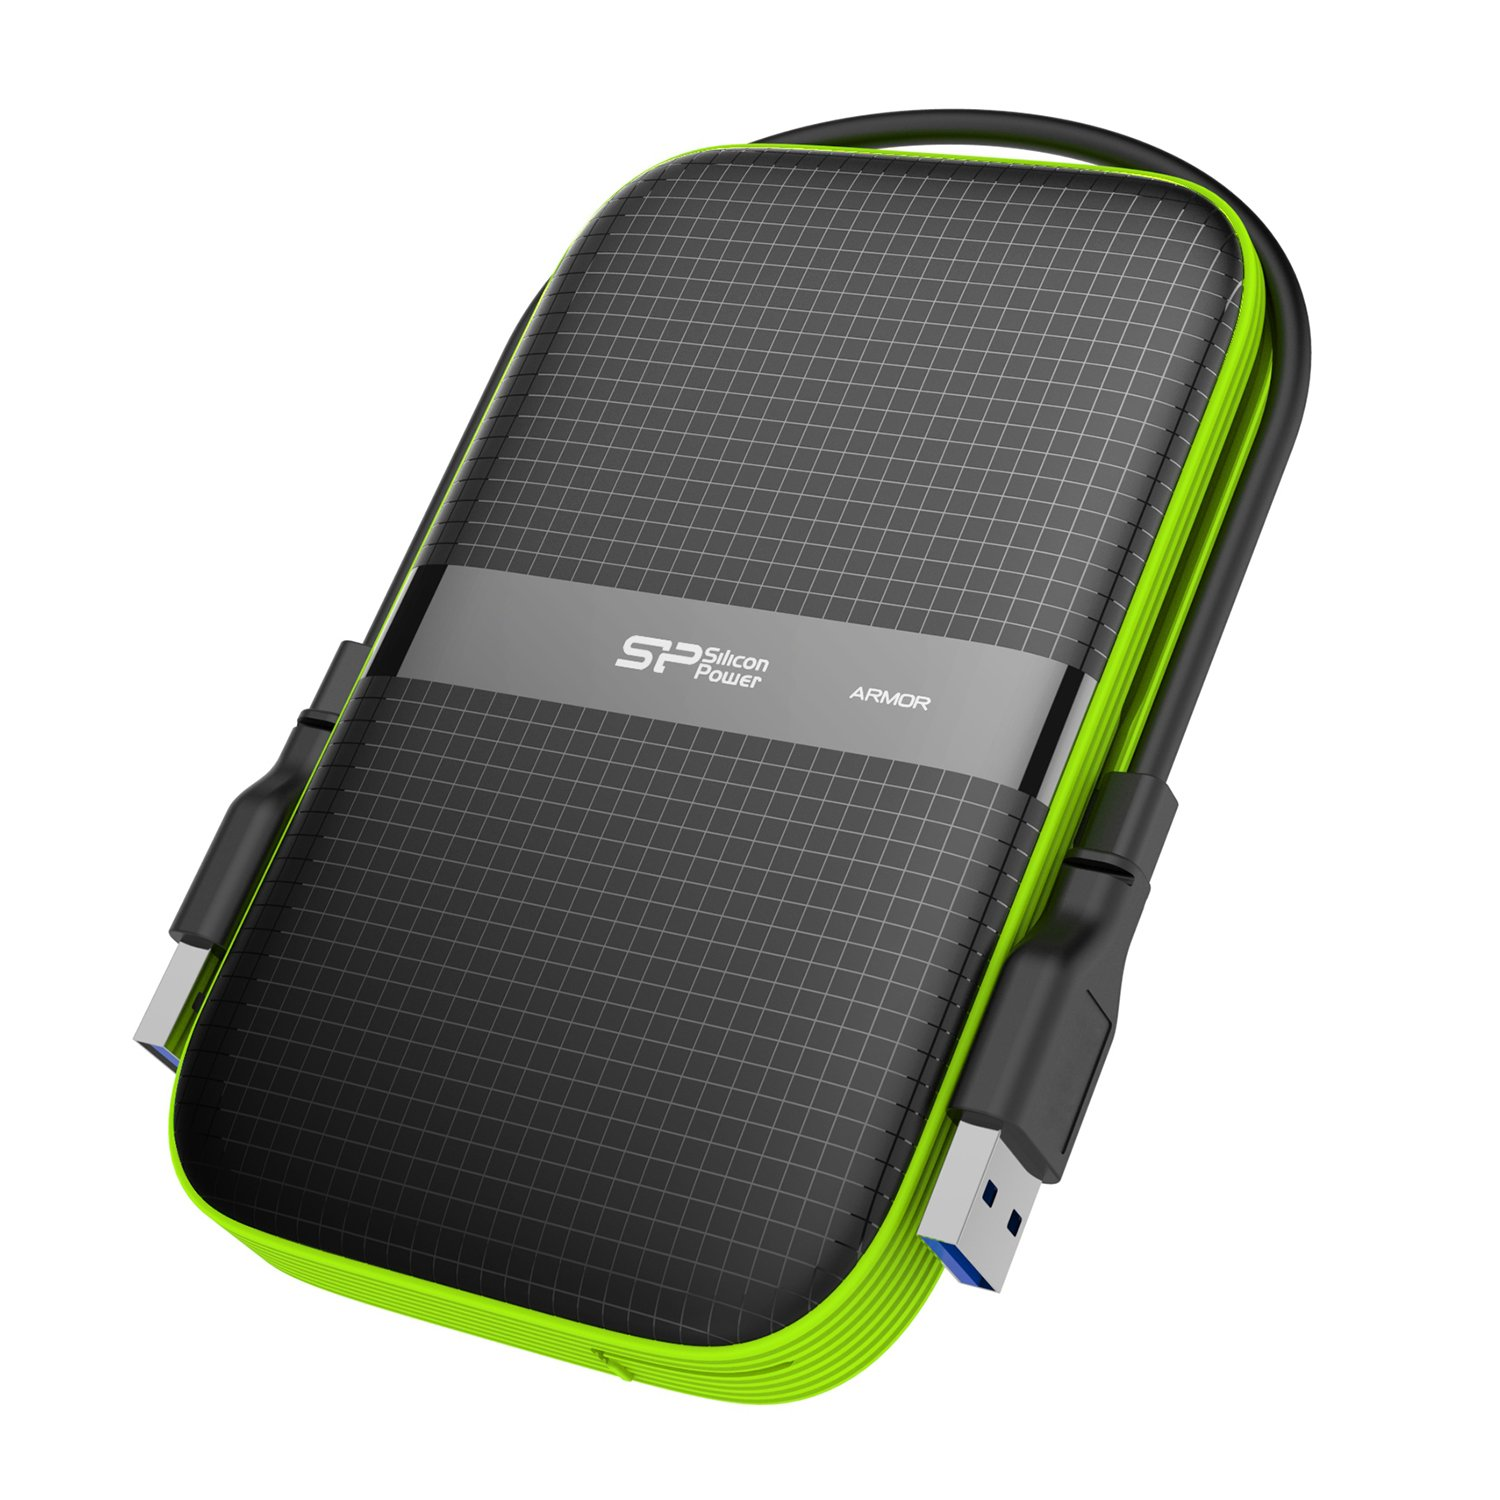 Silicon Power 1TB Black Rugged Portable External Hard Drive Armor A60, Shockproof USB 3.0 for PC, Mac, Xbox and PS4 SP010TBPHDA60S3K